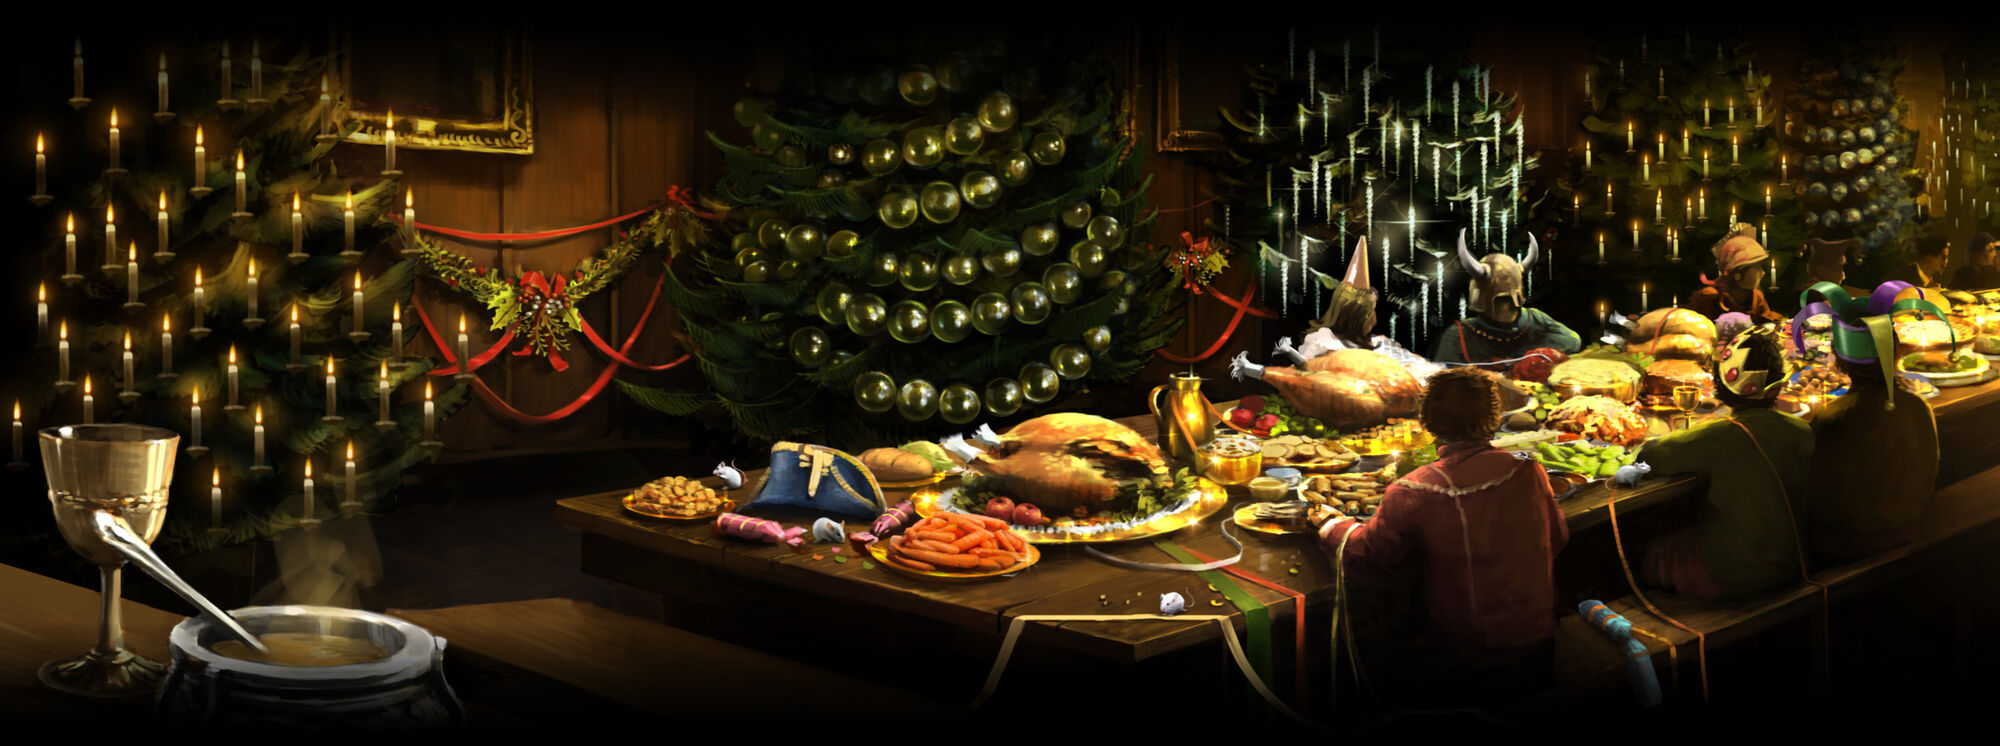 Download Wallpaper Harry Potter Dining Hall - 2000?cb\u003d20161211014909  You Should Have_854848.jpg/revision/latest/scale-to-width-down/2000?cb\u003d20161211014909